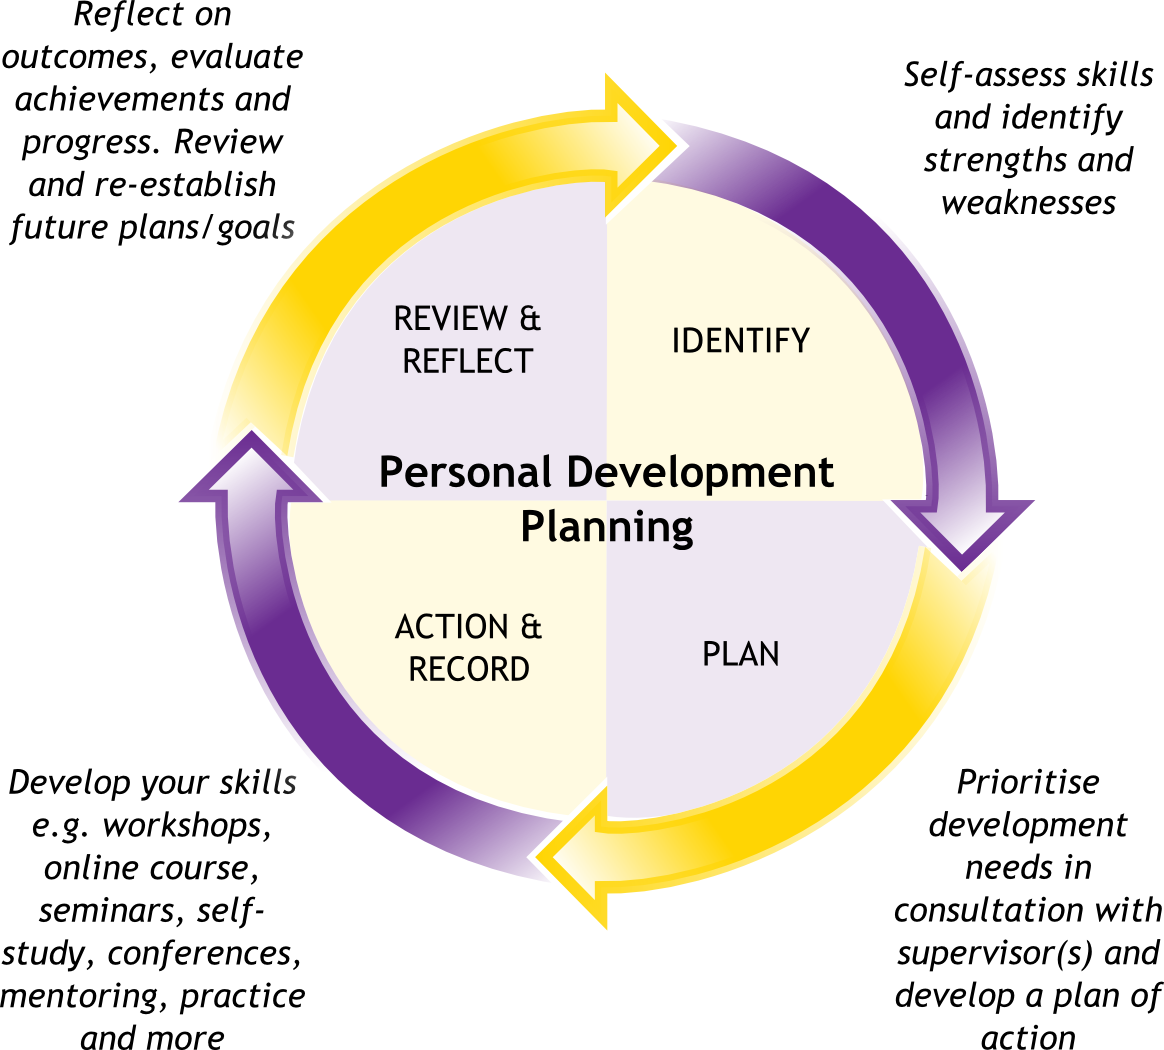 personal development plans assignment in business See the mandatory noaa pmf training and development program section for   development plan (idp): develop an individual development plan (idp) with the   building the developmental assignment business case.